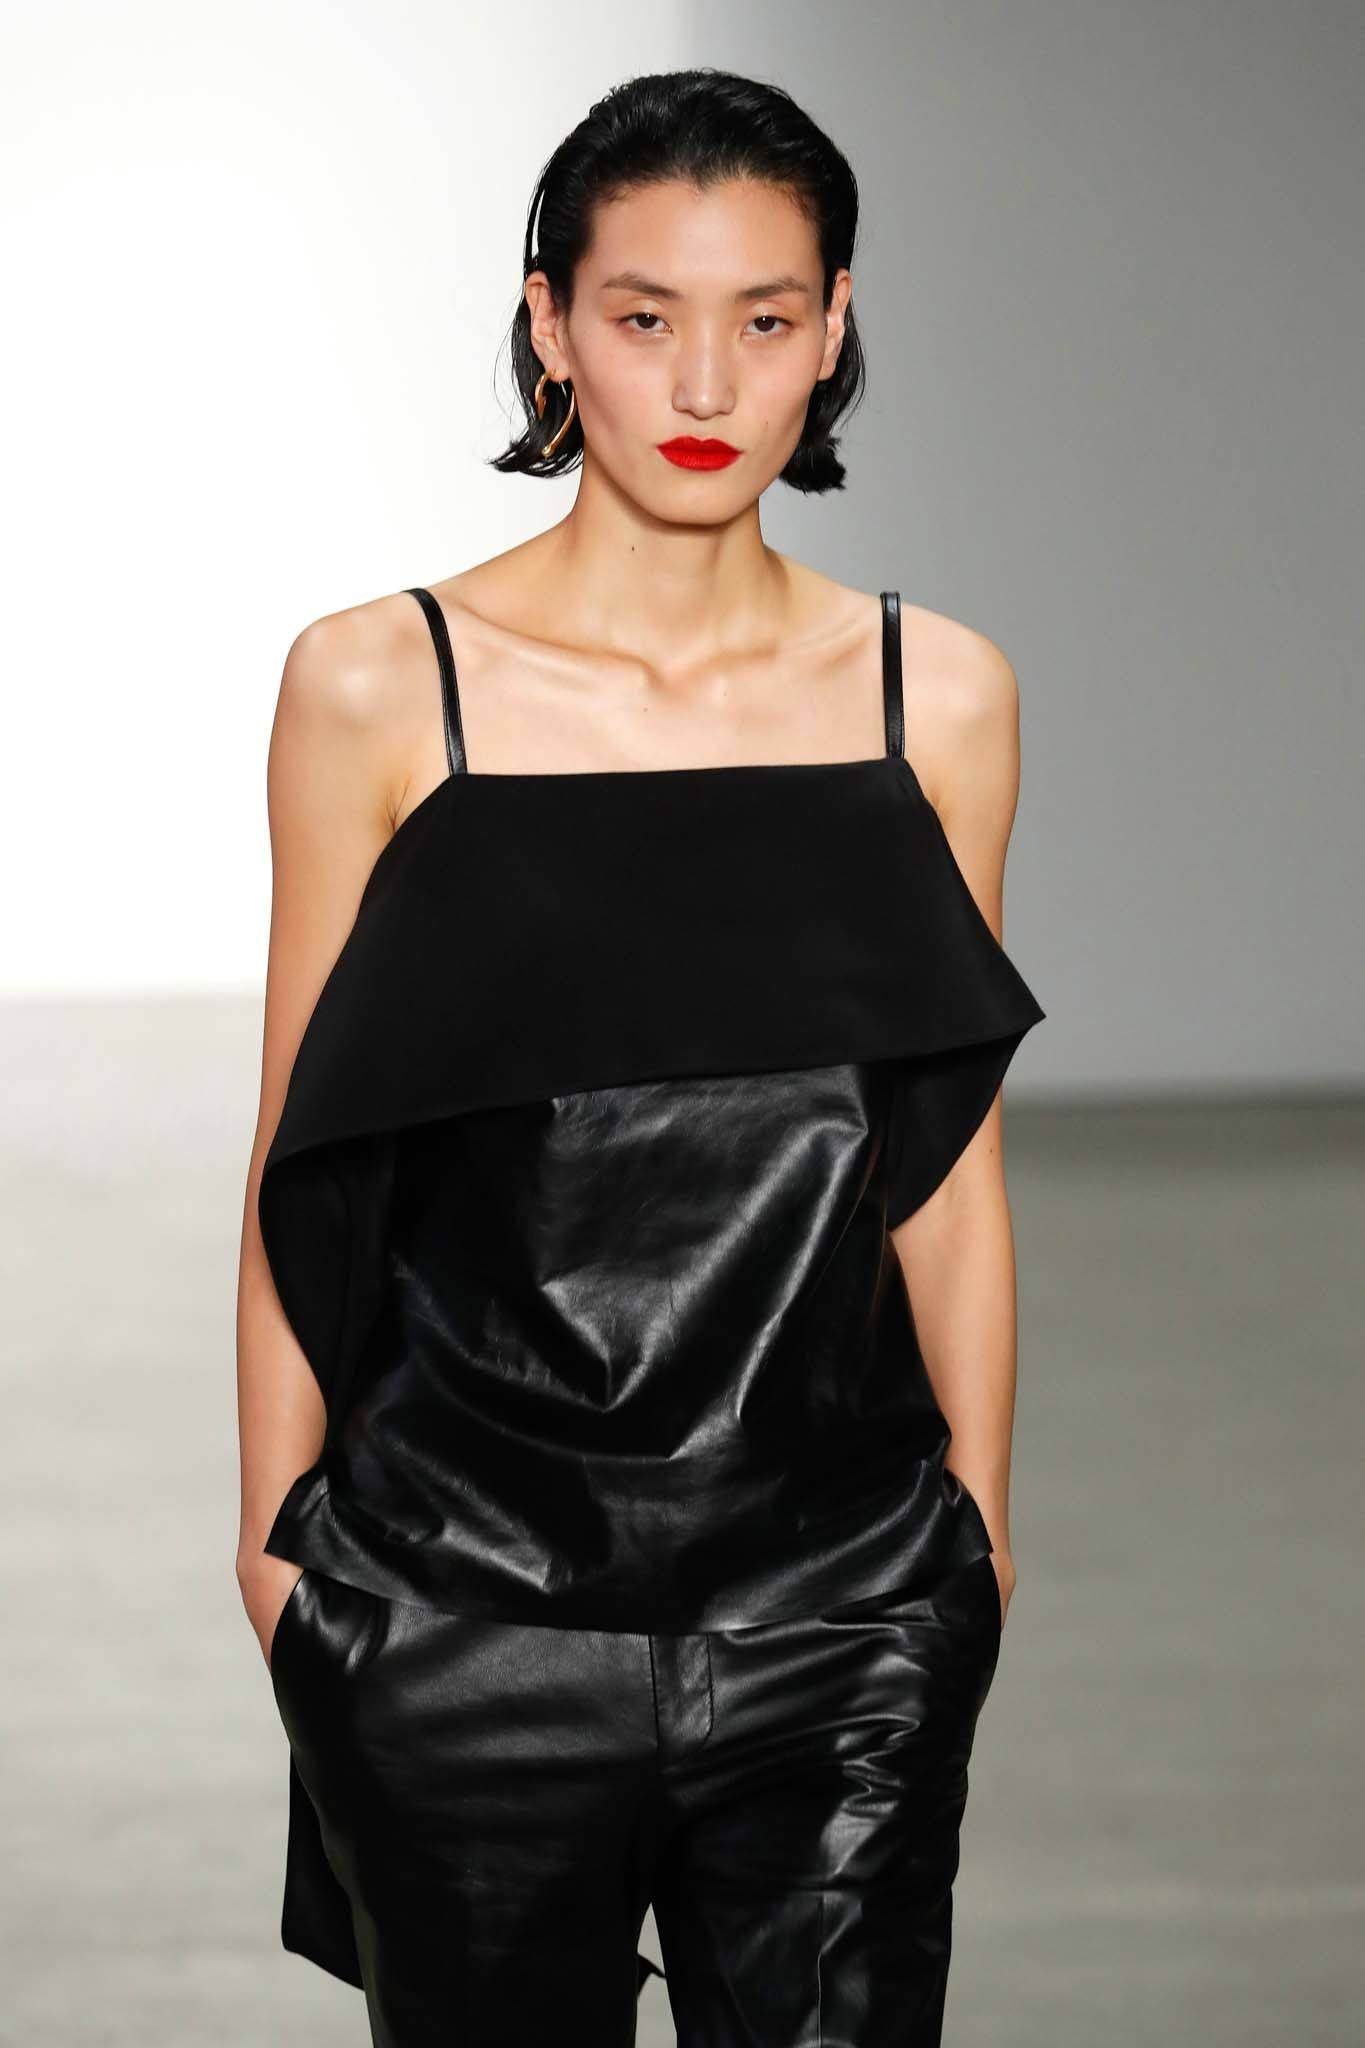 NYFW Catwalk Trends: Woman on Helmut Lang FW19 show with short dark brown bob swept back wearing all black outfit and red lipstick.